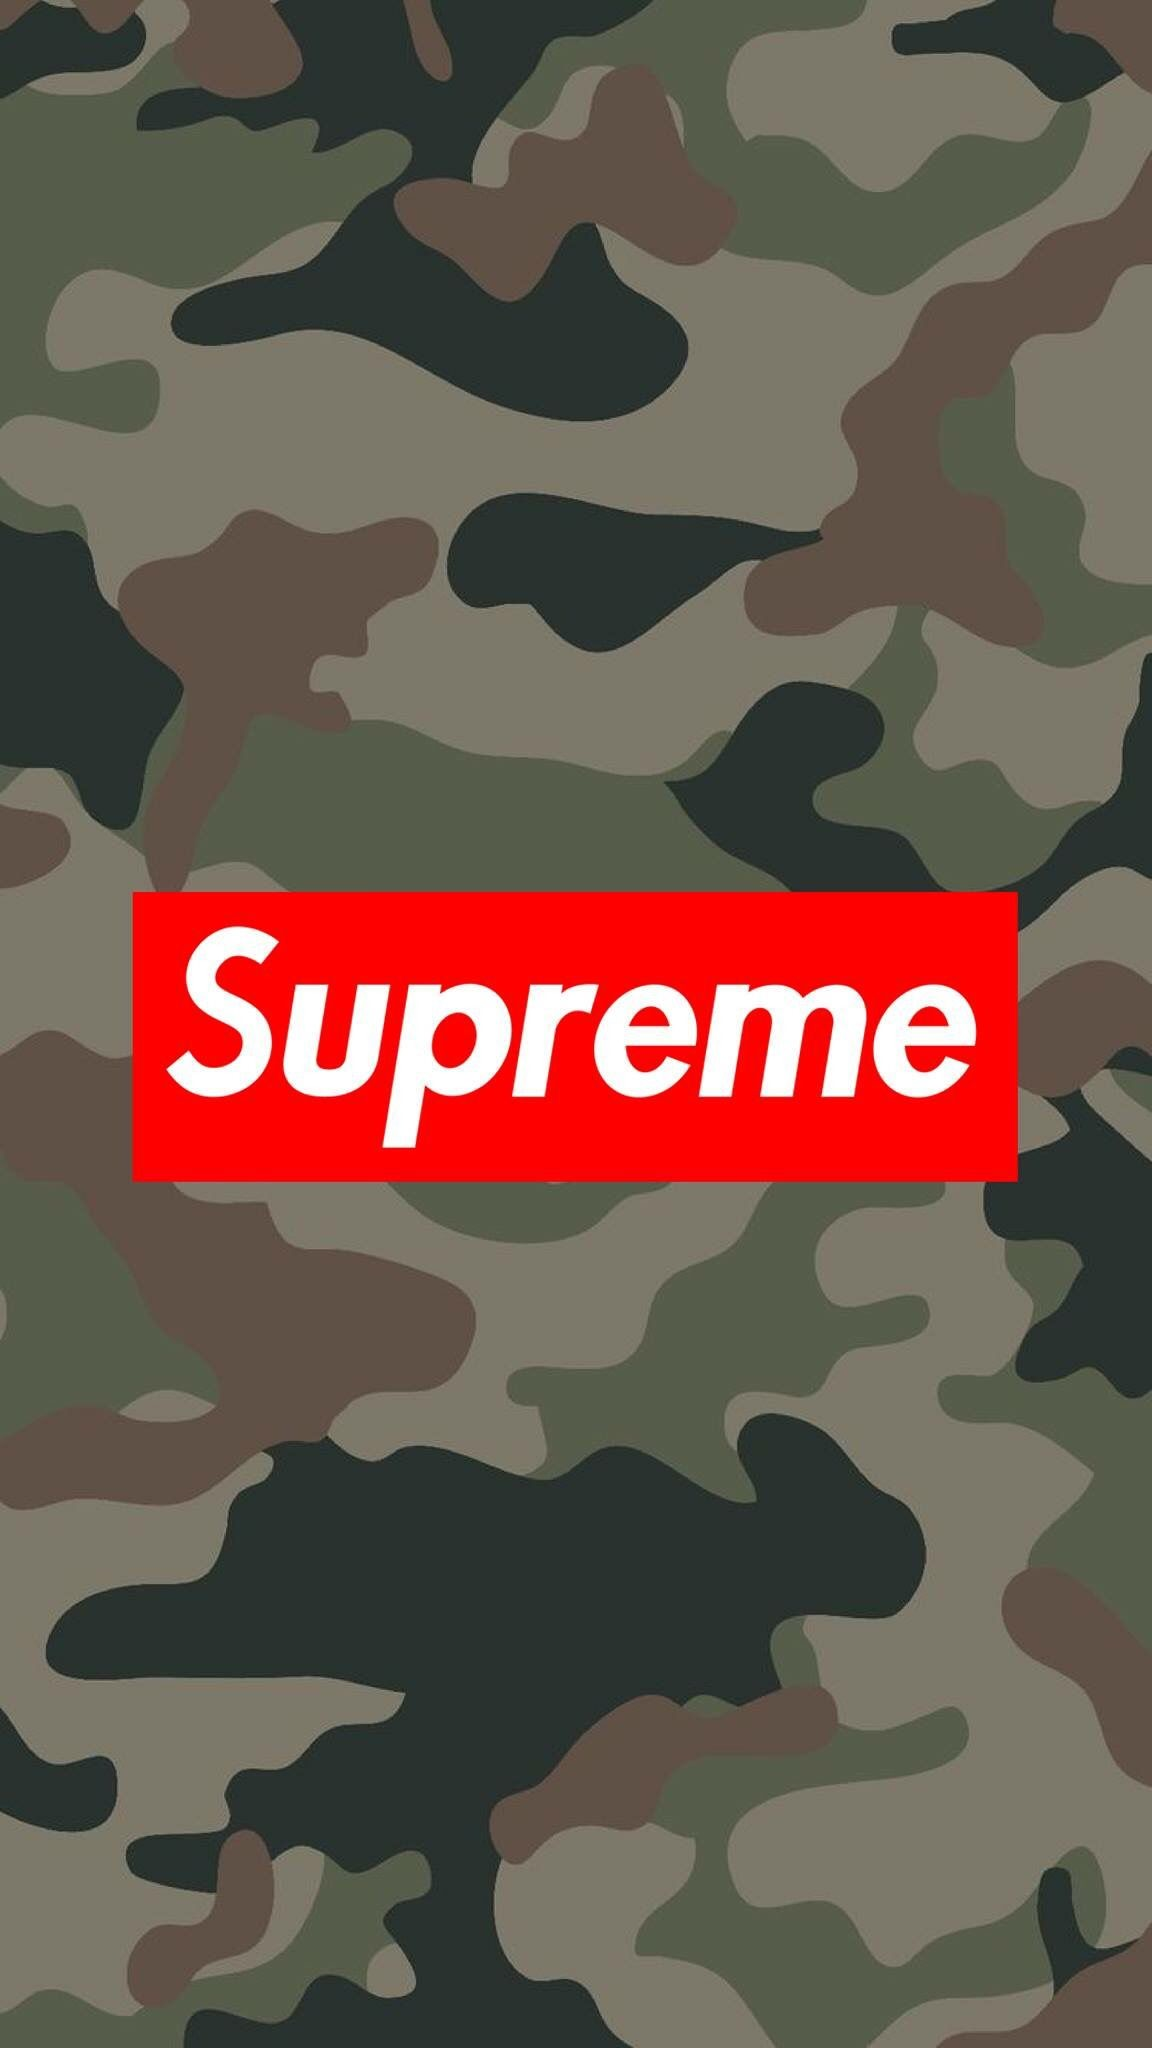 1152x2048, Love   Data Id 96094   Data Src /walls/full/5/d/e/96094 - Supreme Camo Wallpaper Iphone - HD Wallpaper